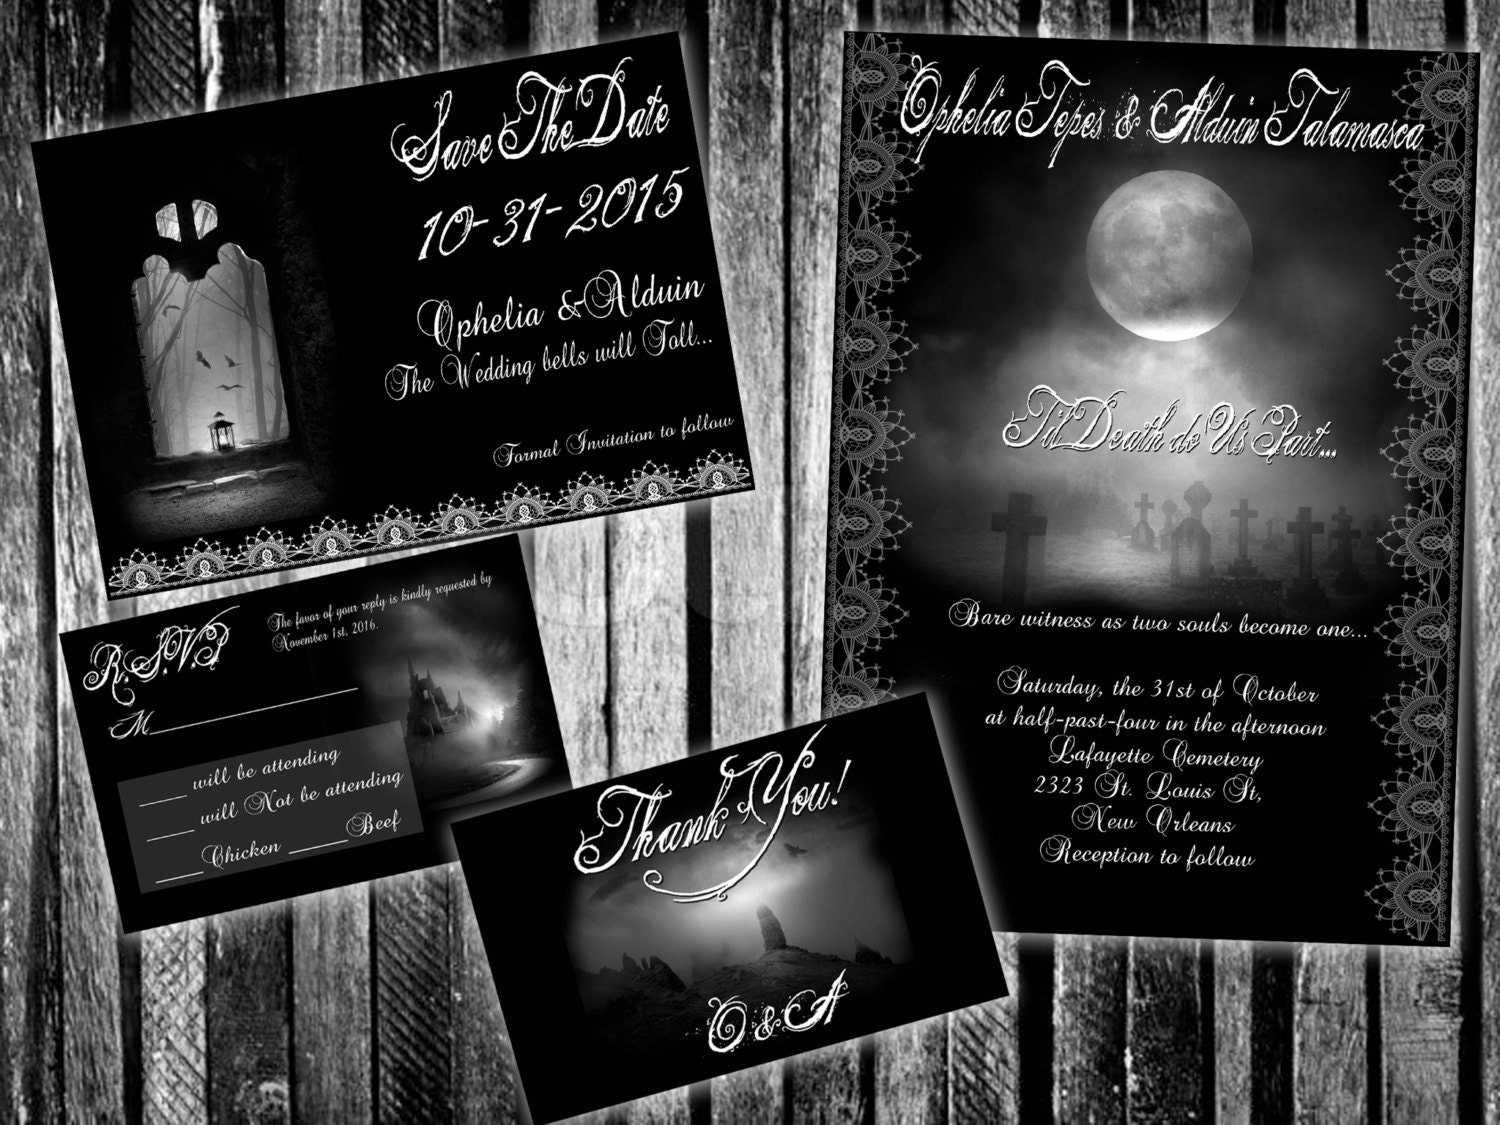 Halloween Wedding Invitation: Gothic Landscapes Halloween Wedding Invitation Set Save The